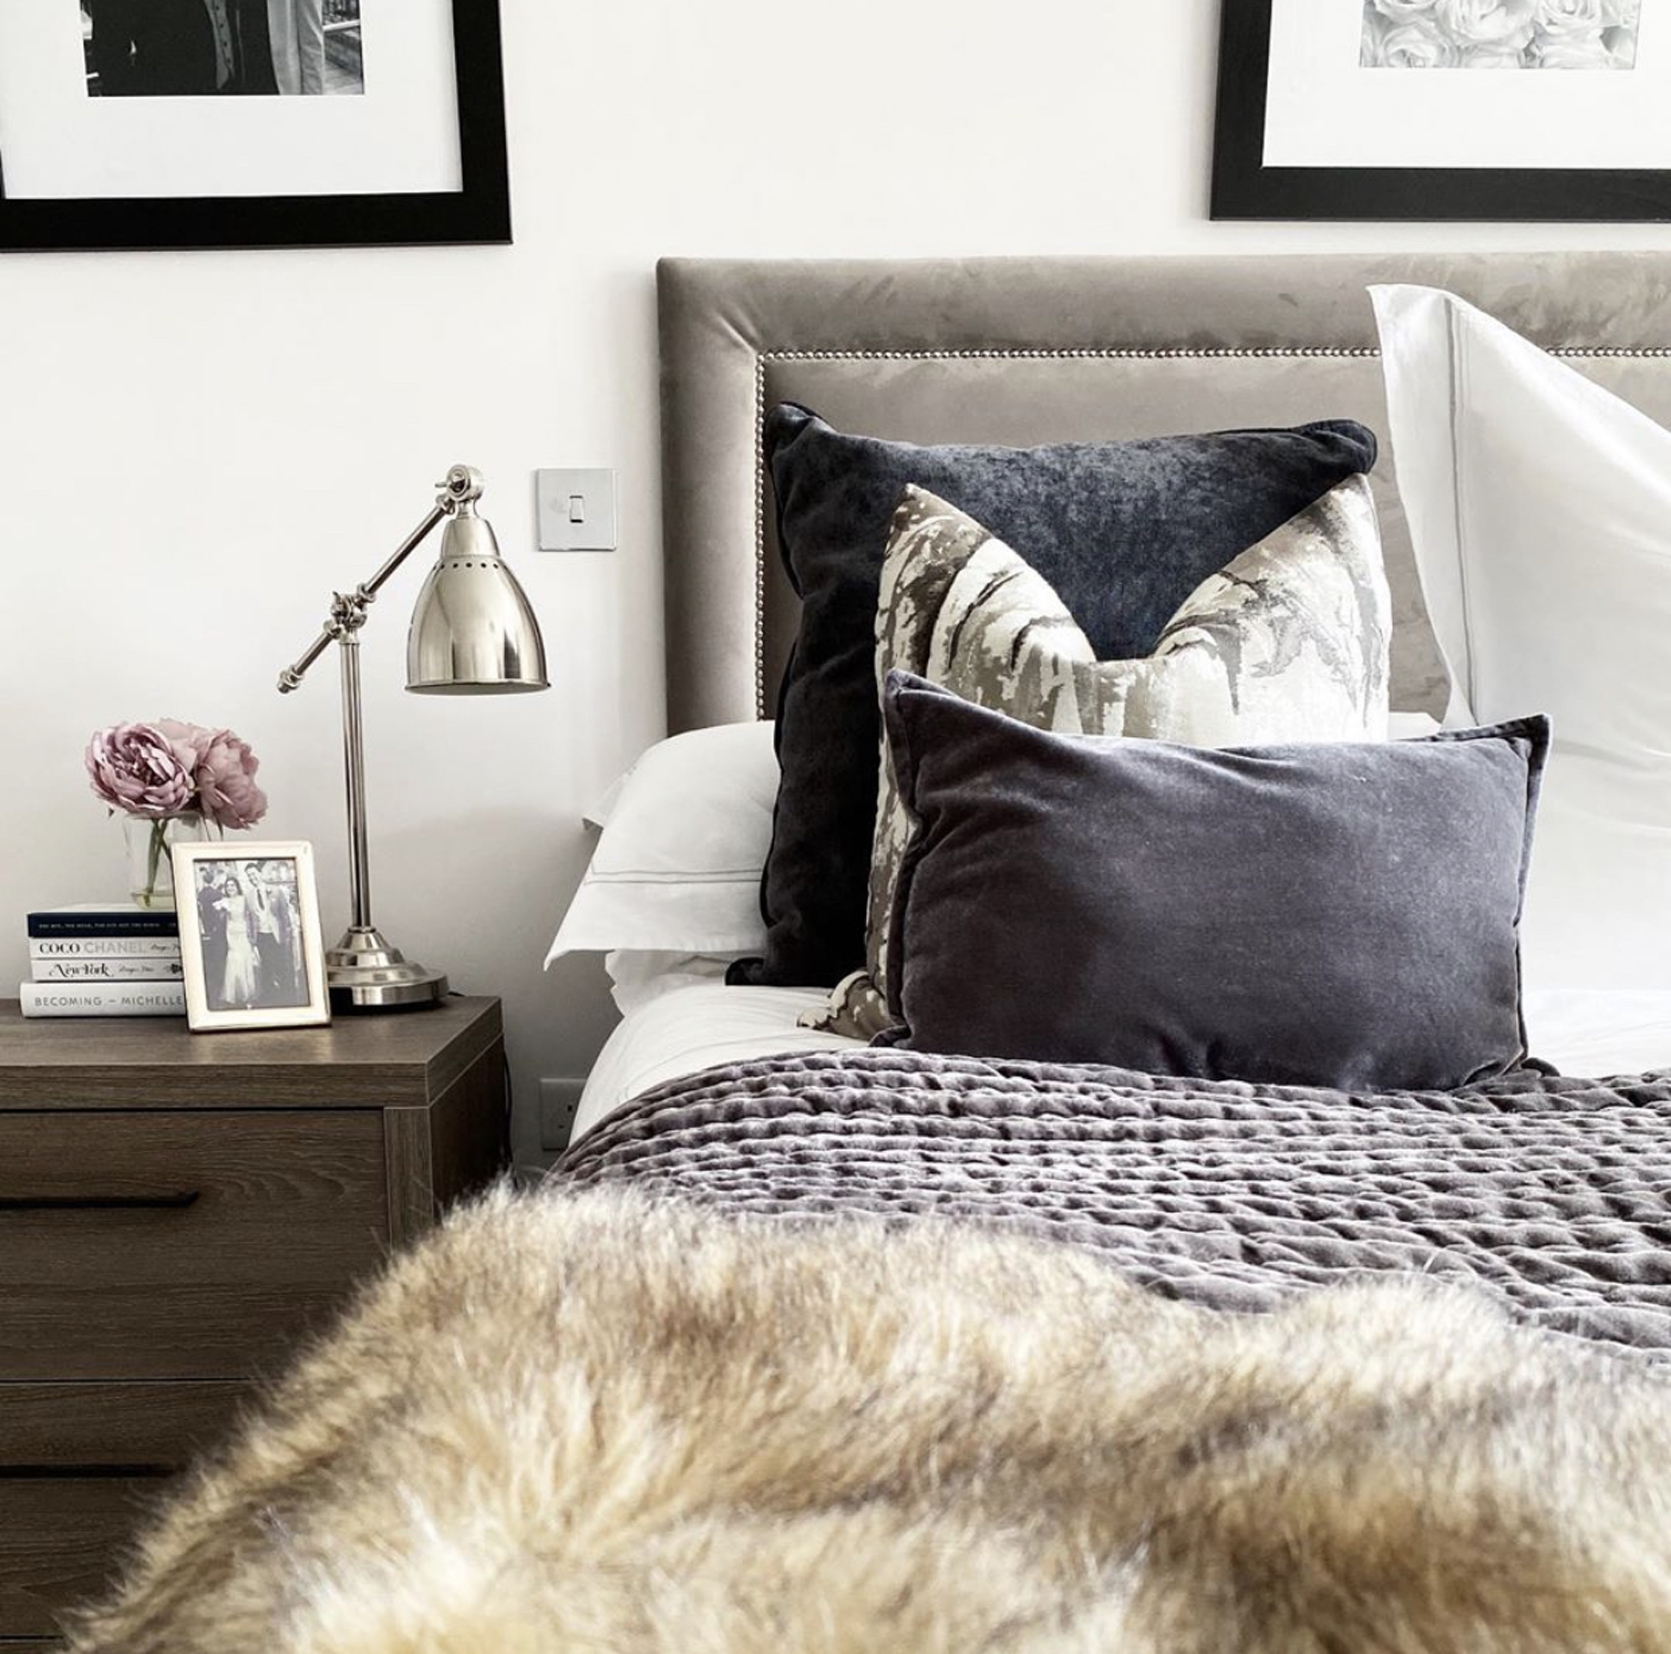 _Daval Bedroom lifestyle